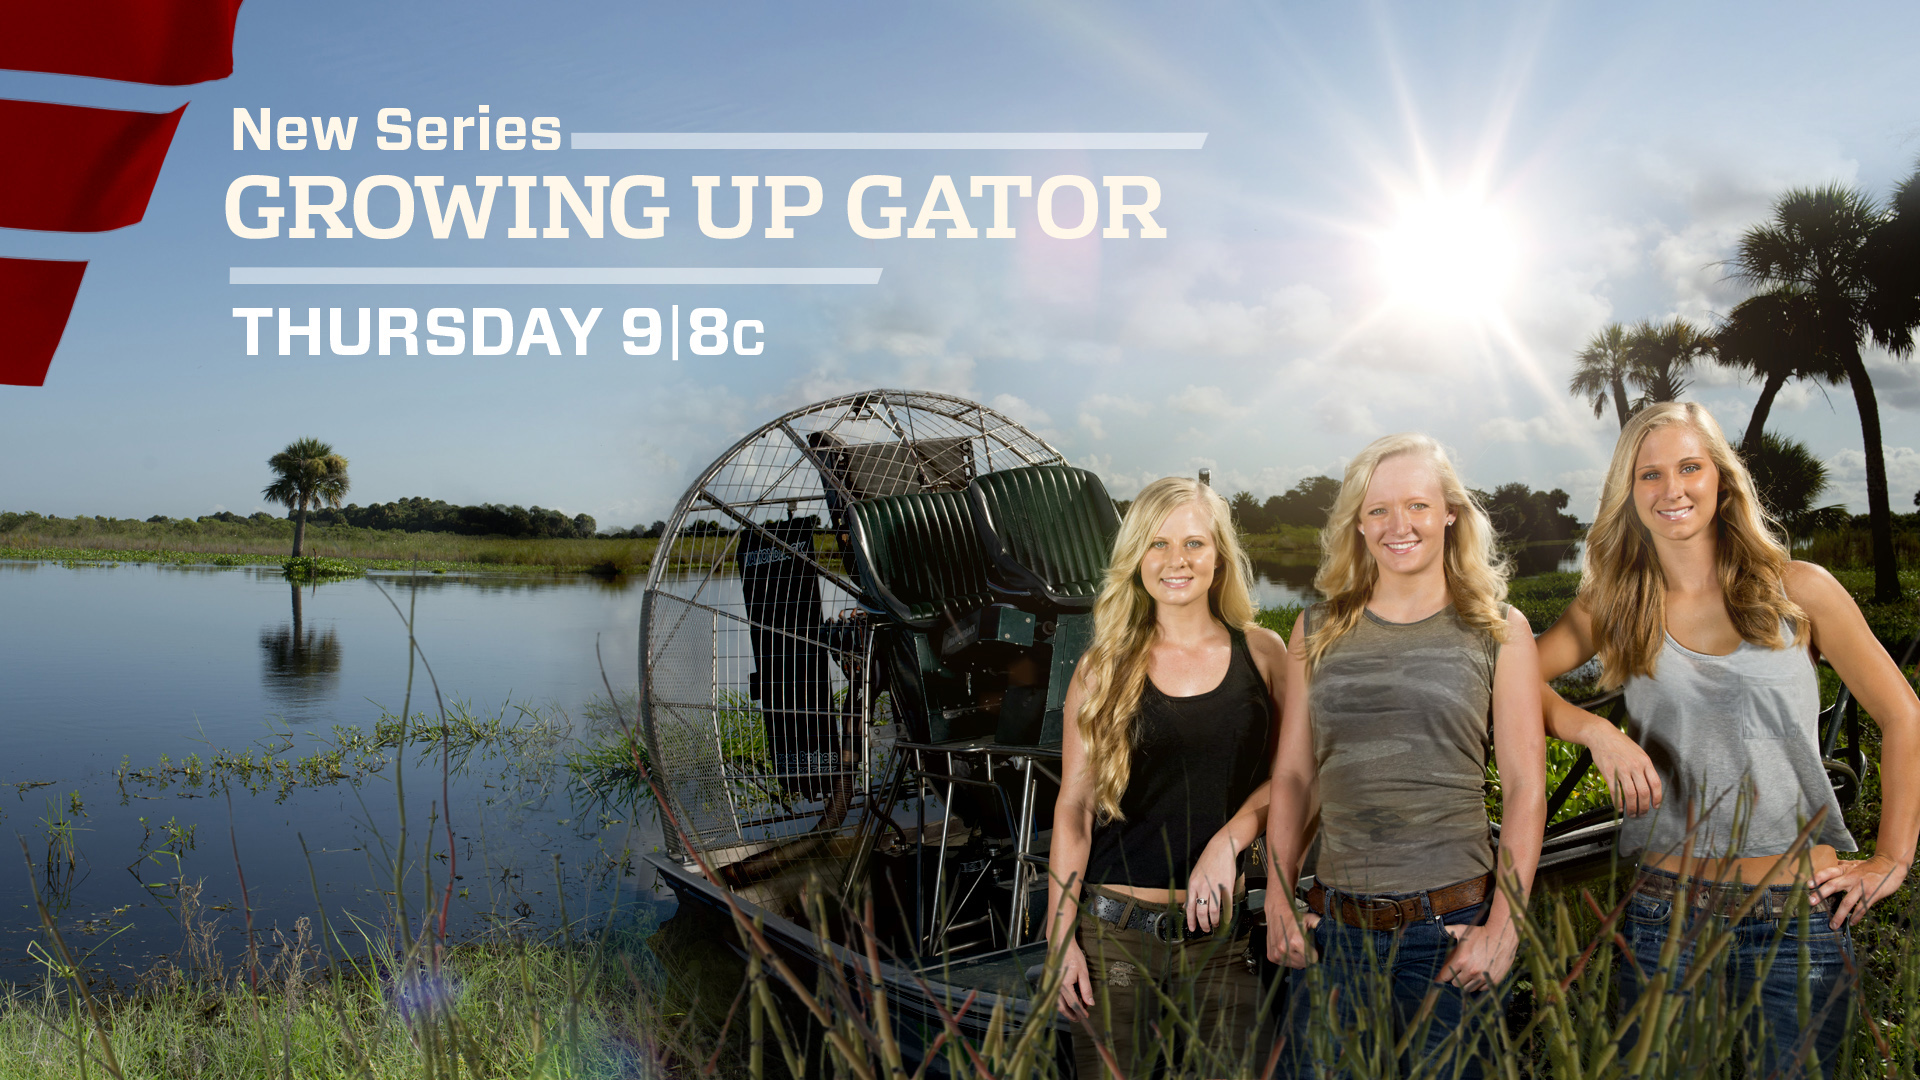 Growing Up Gator Promo Layout 2.jpg